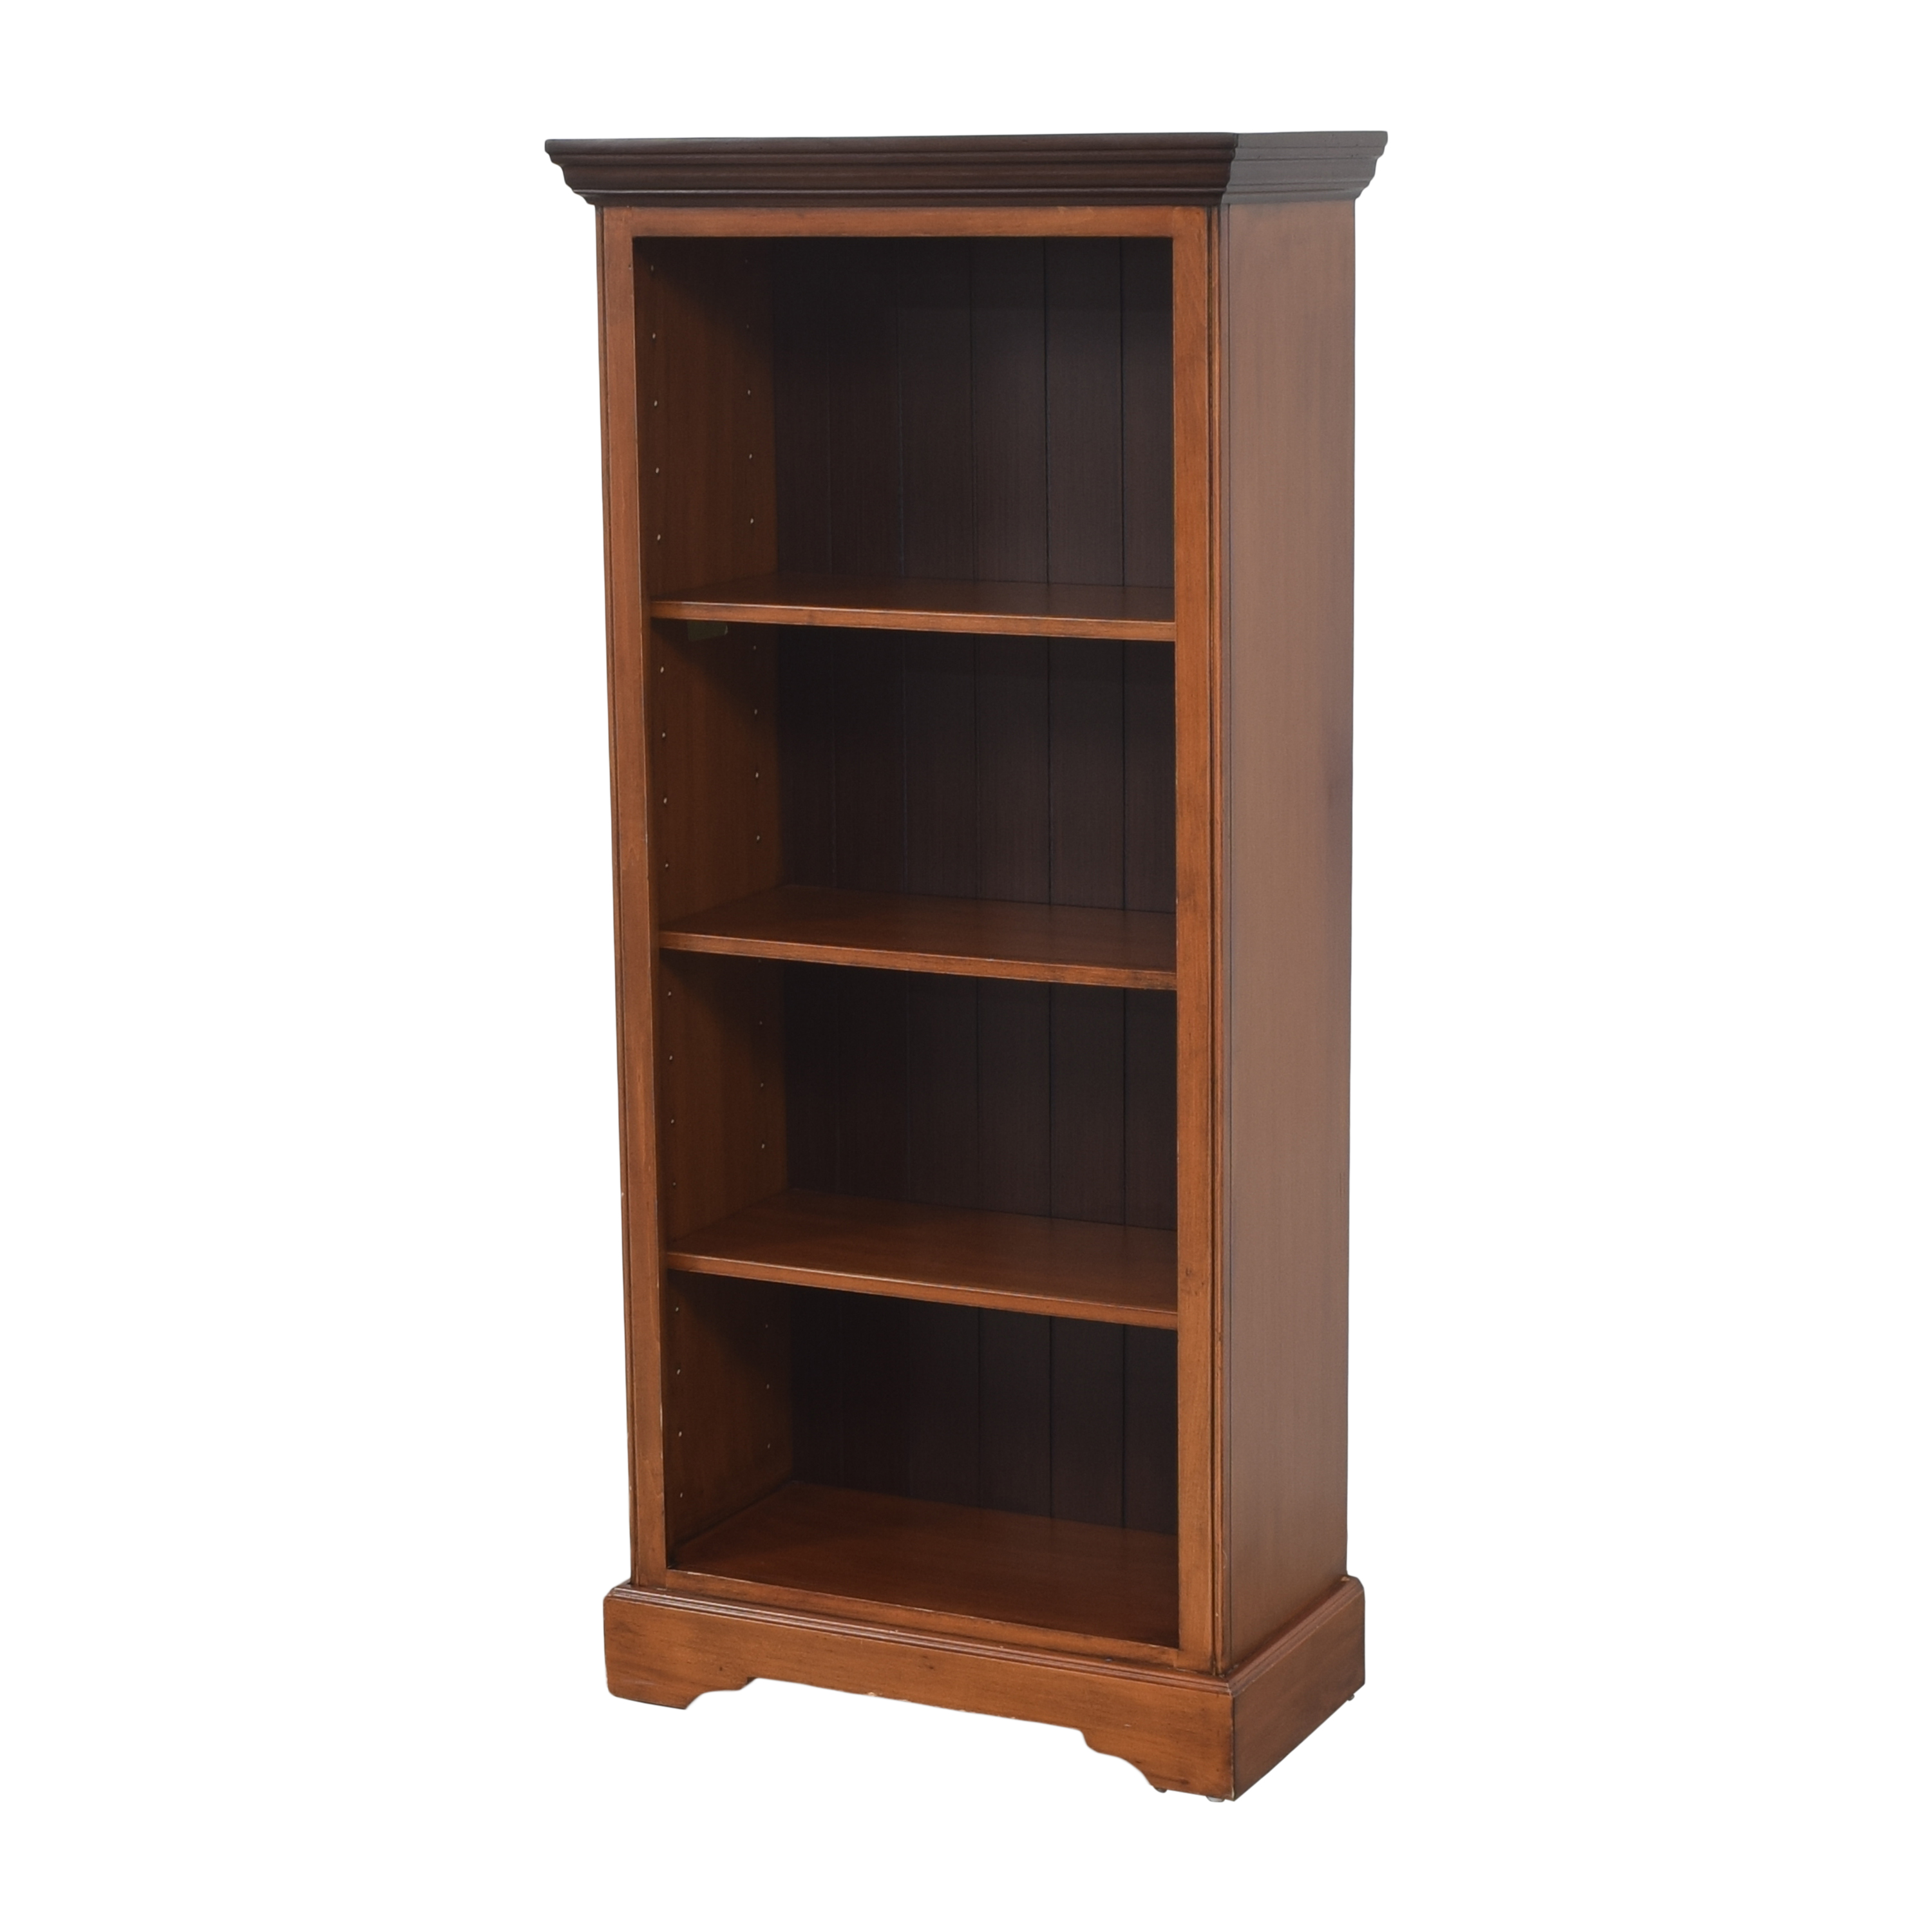 Country Willow Country Willow Custom Bookcase ct